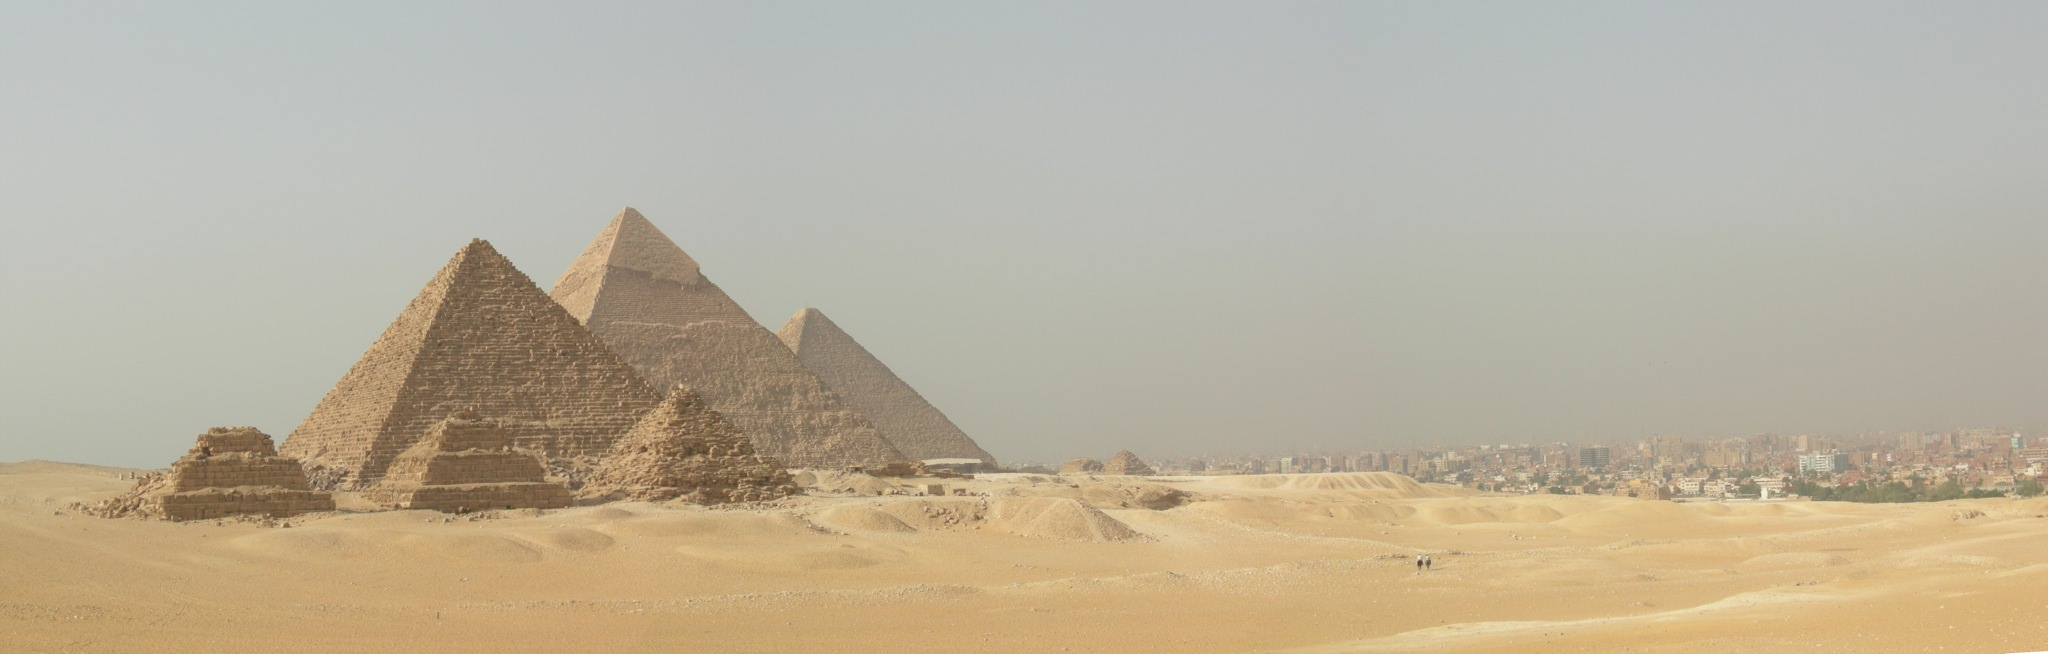 the great pyramid of giza last remaining wonder of the ancient the great pyramid of giza last remaining wonder of the world article history encyclopedia